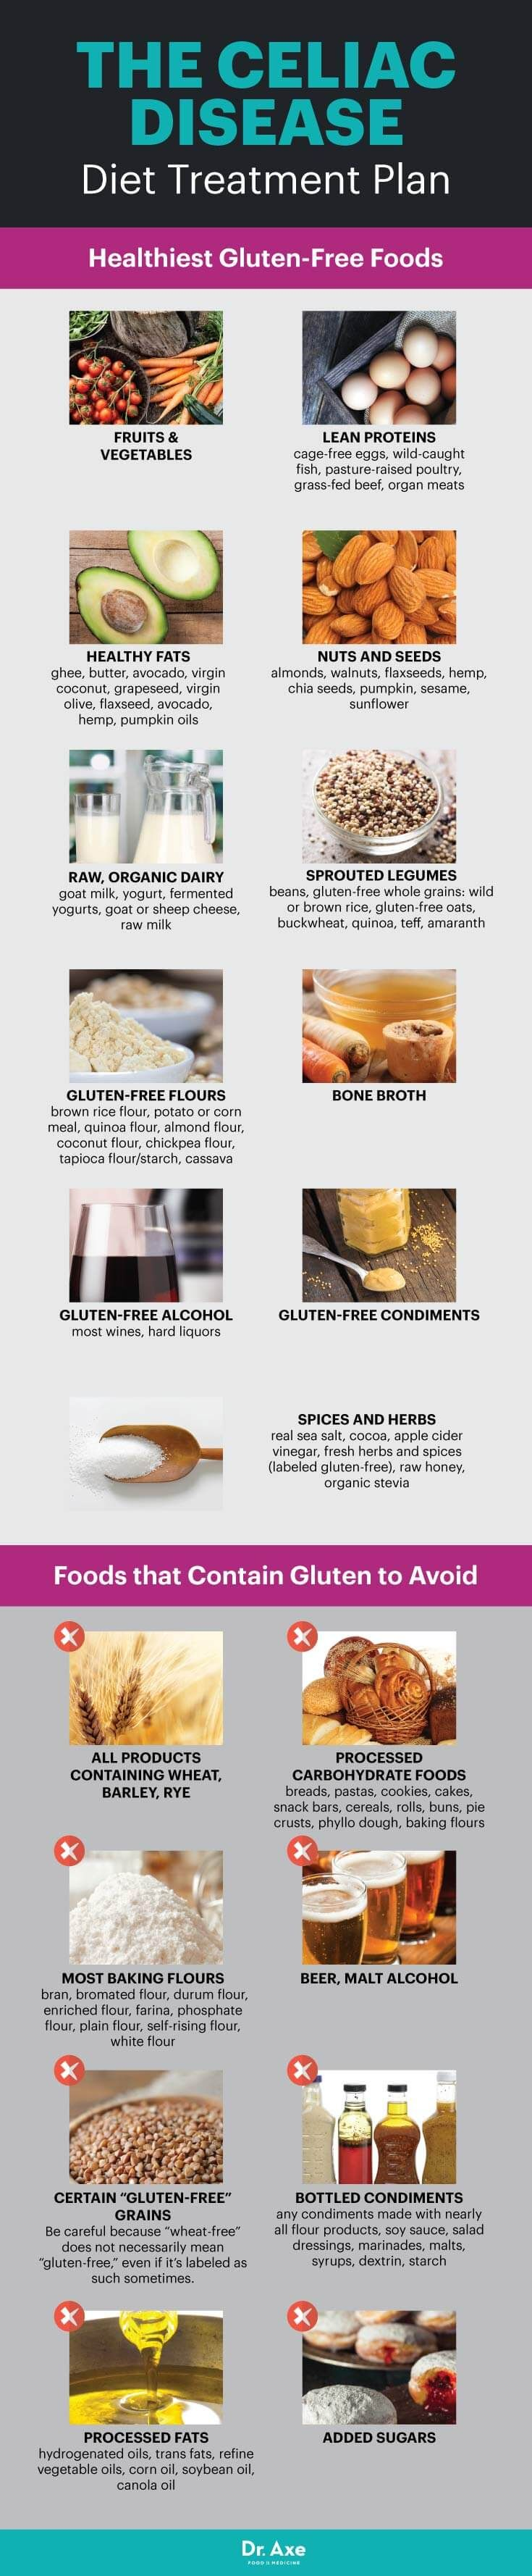 Celiac disease diet foods to eat and avoid - Dr. Axe http://www.draxe.com #health #holistic #natural